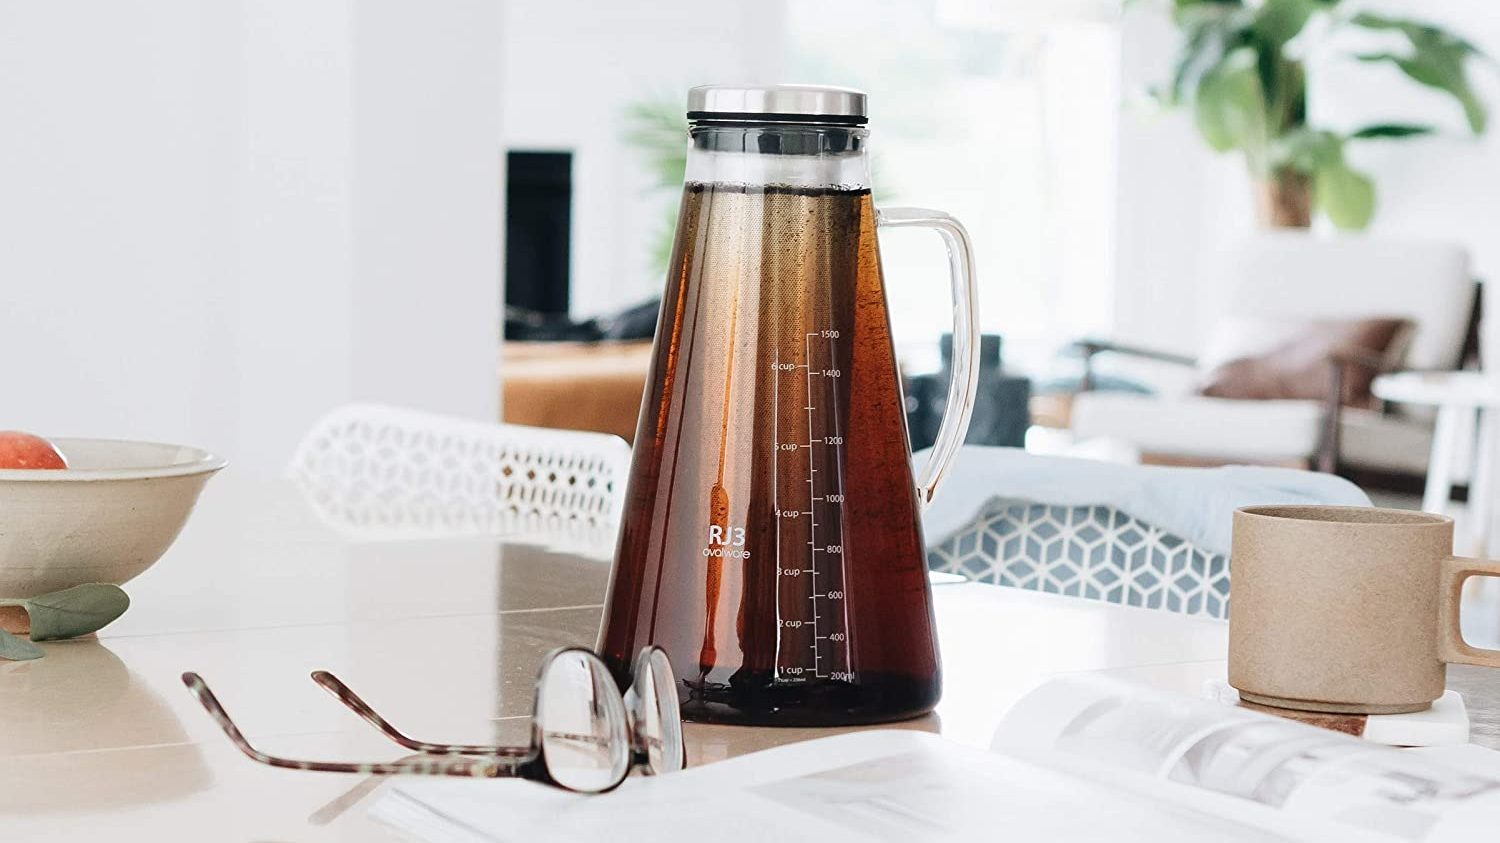 Best for Hot or Cold Drinks